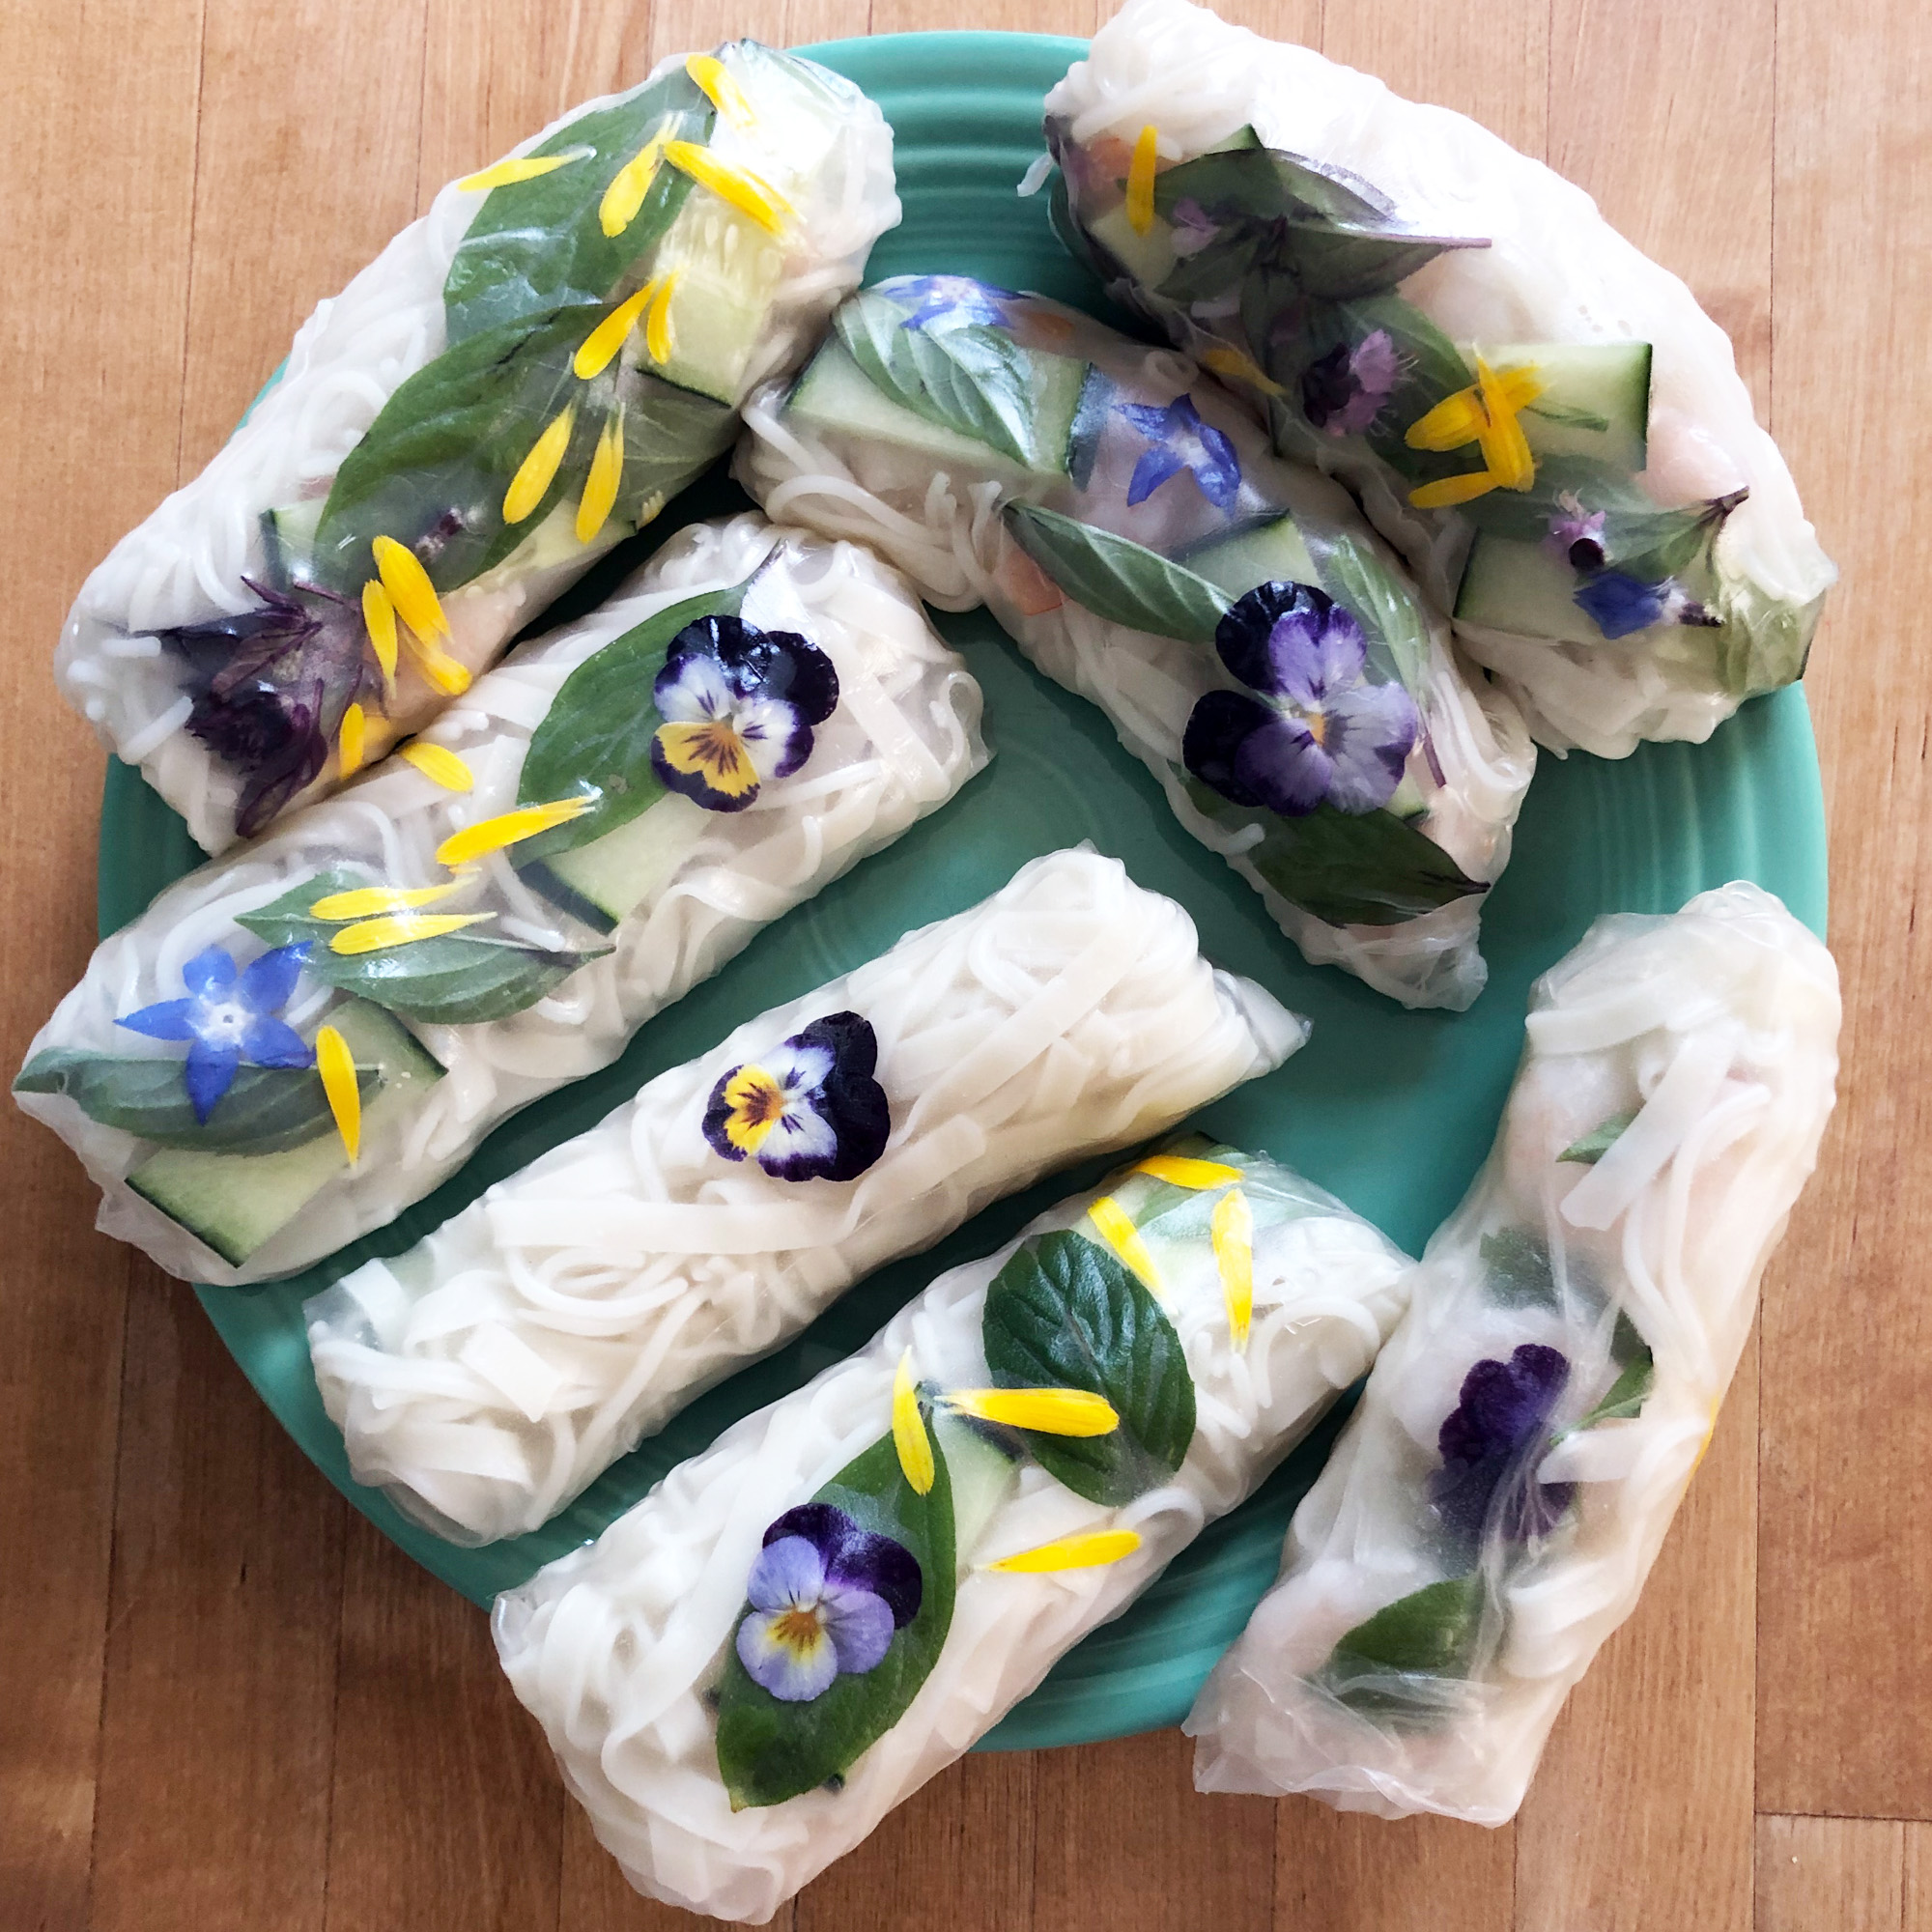 Violas are edible and fun to use in food like these spring rolls